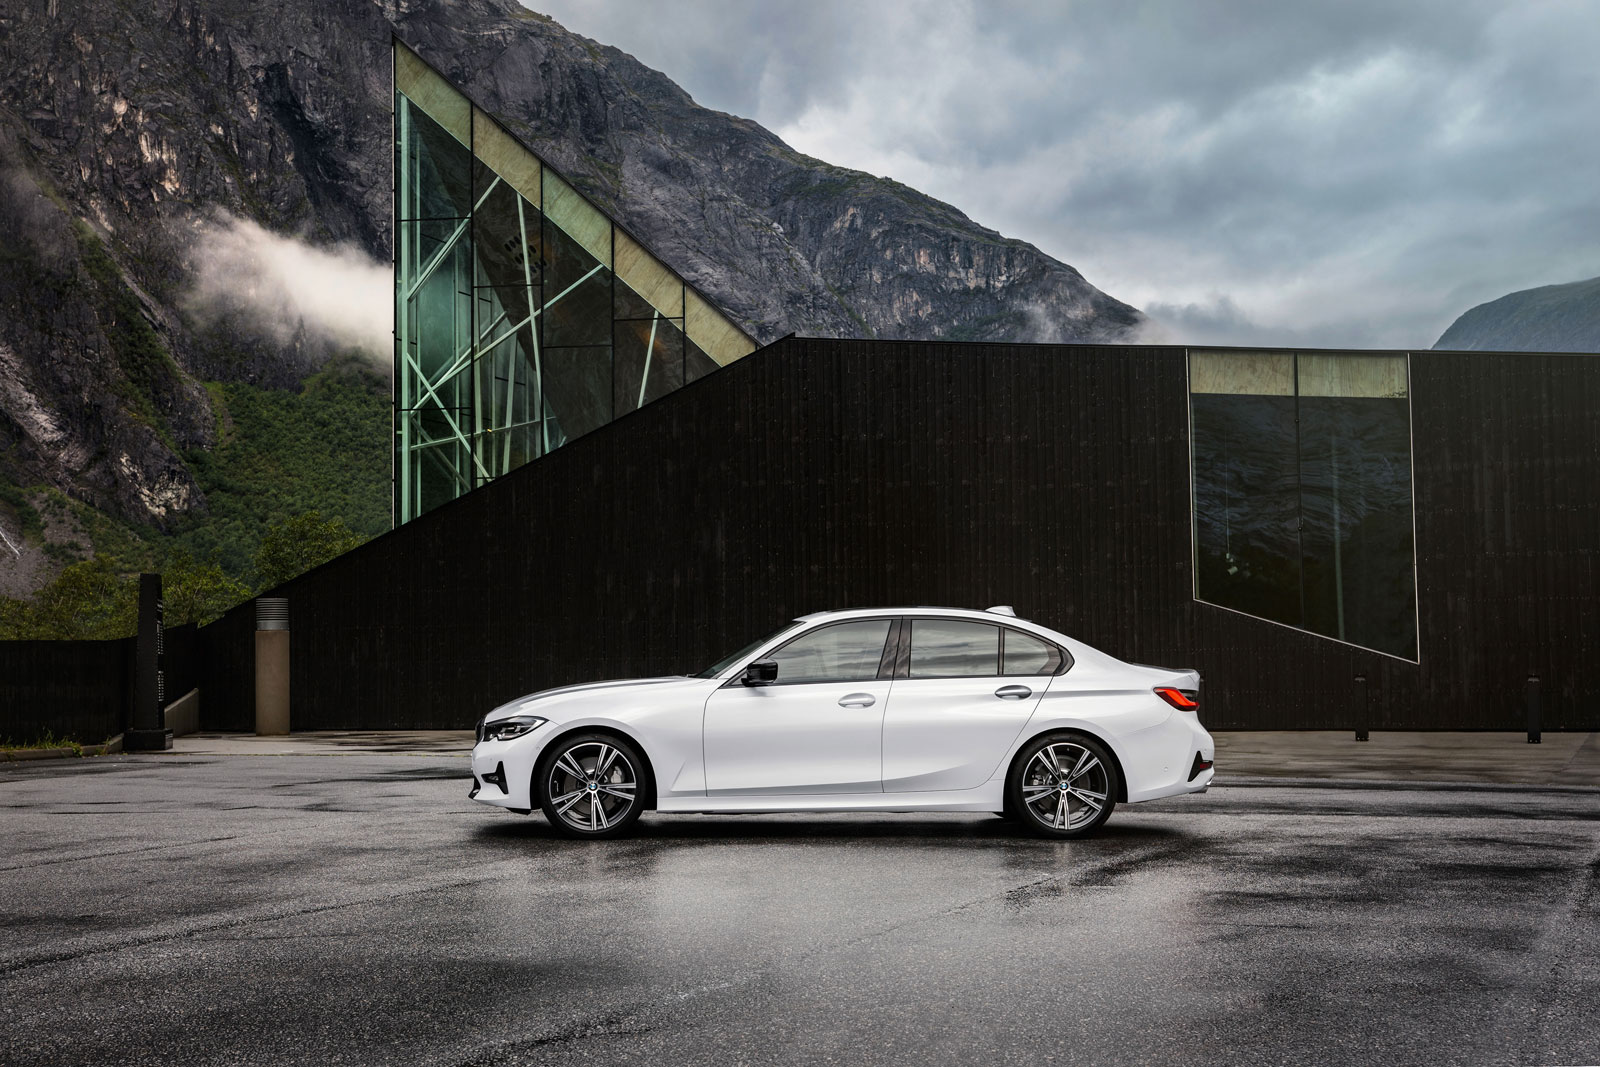 New BMW 3 Series Sedan Exterior Design